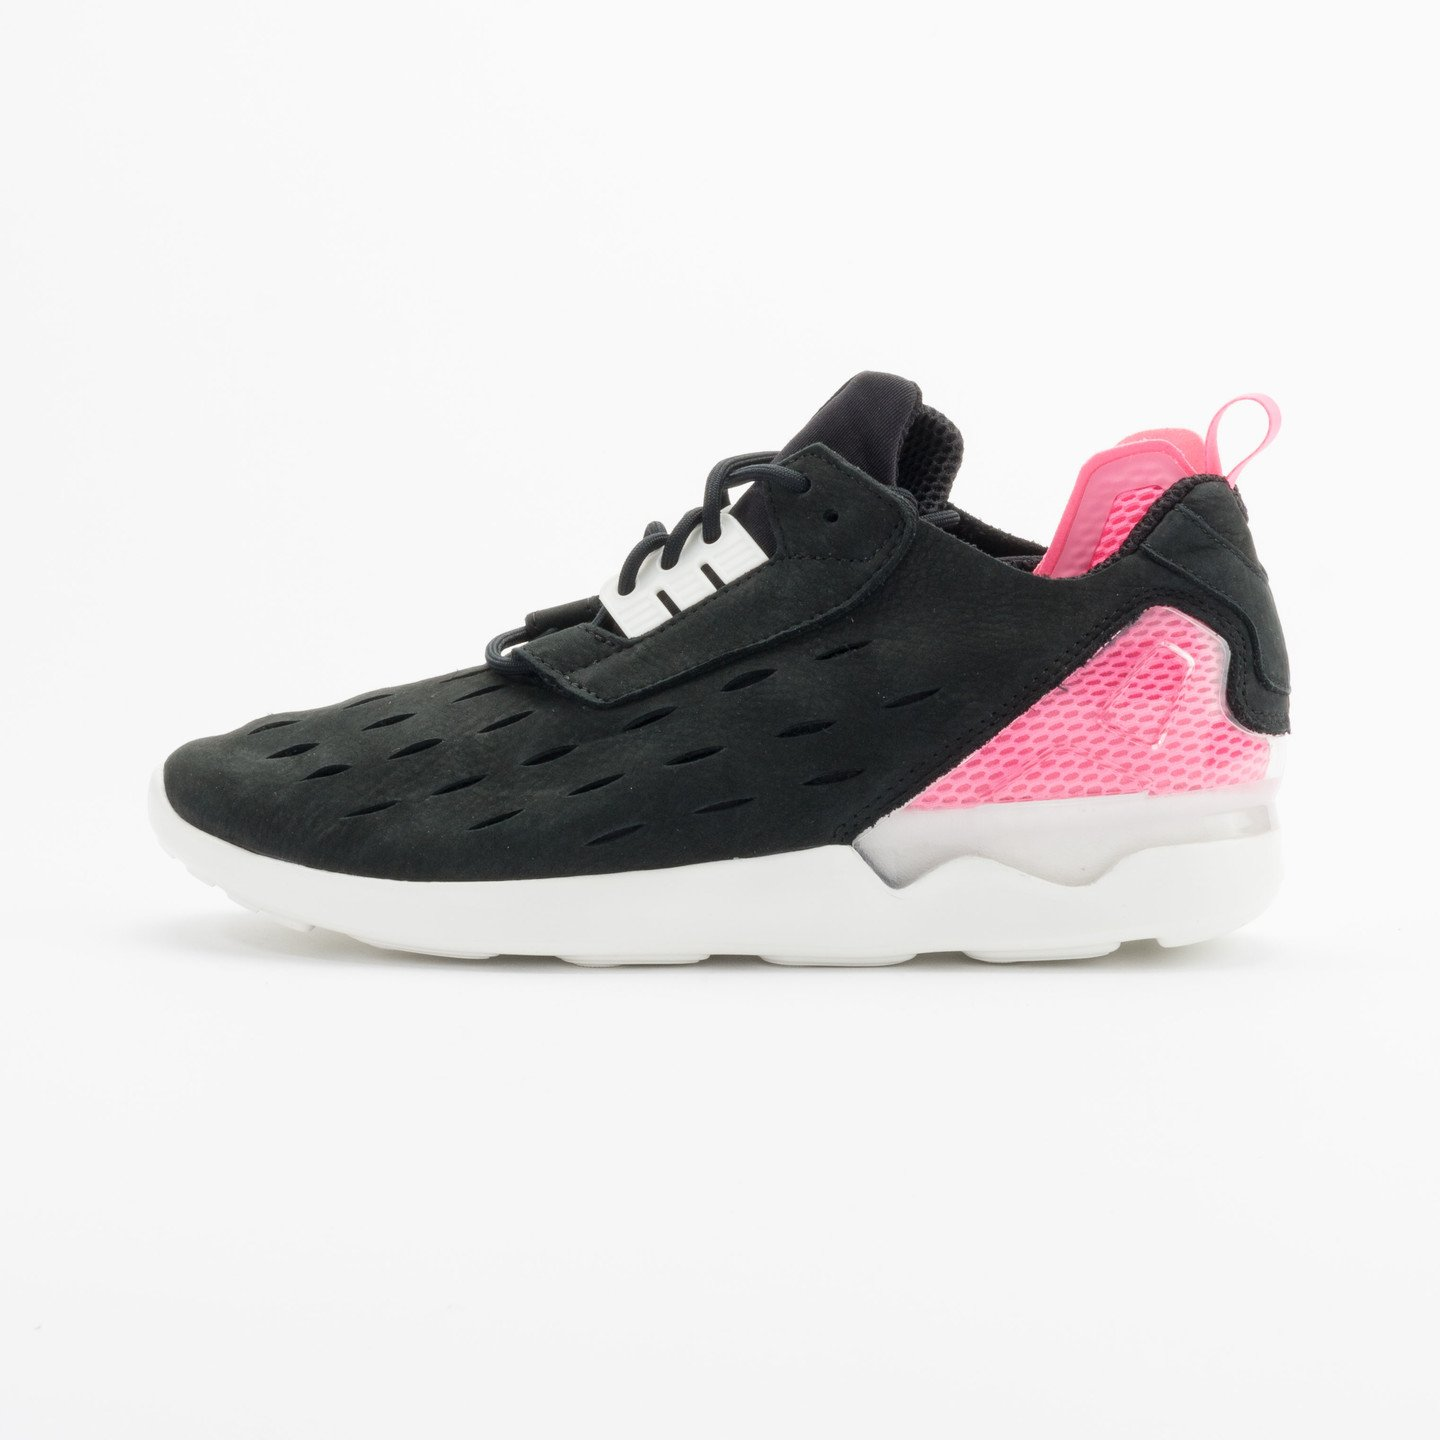 Adidas ZX 8000 Blue Boost Black/Hot-Pink/White B25872-42